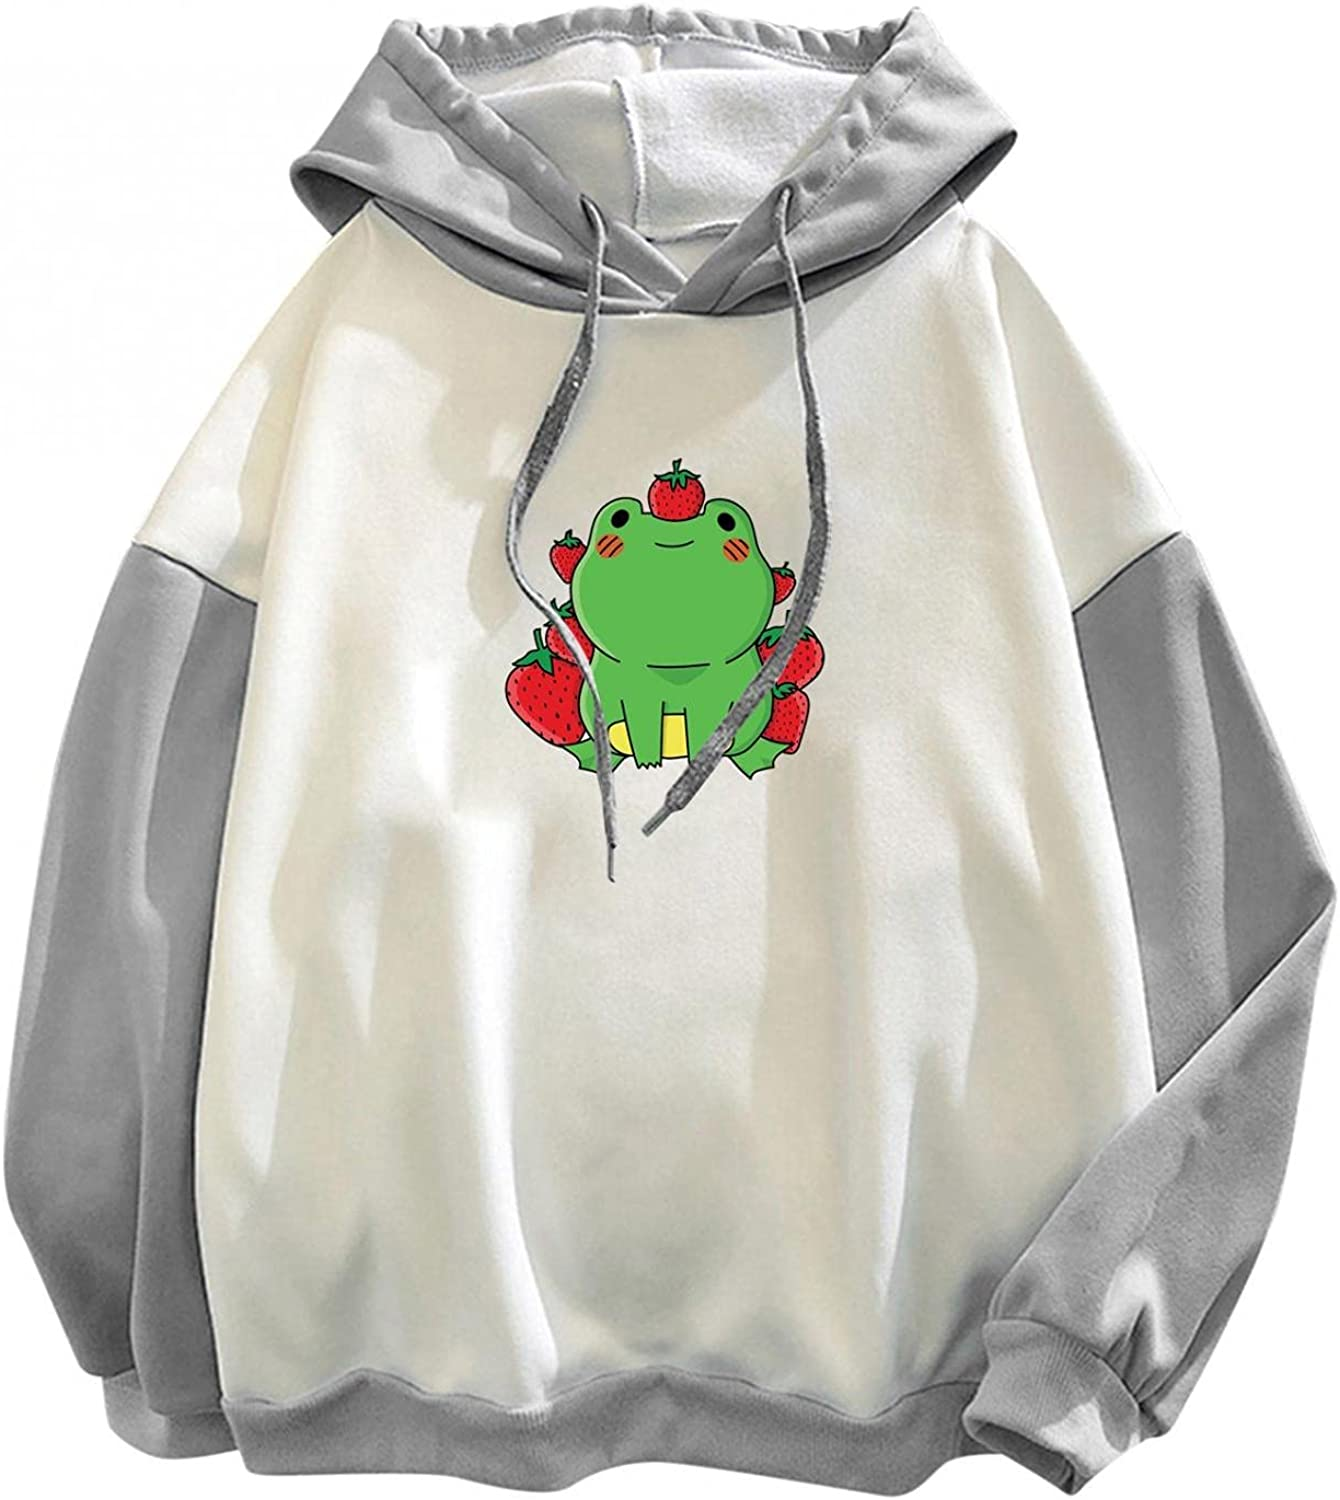 wlczzyn Hoodies for Women,Women's Splicing Cute Frog Print Hooded Pullover Lightweight Loose Fit Hooded Sweashirts